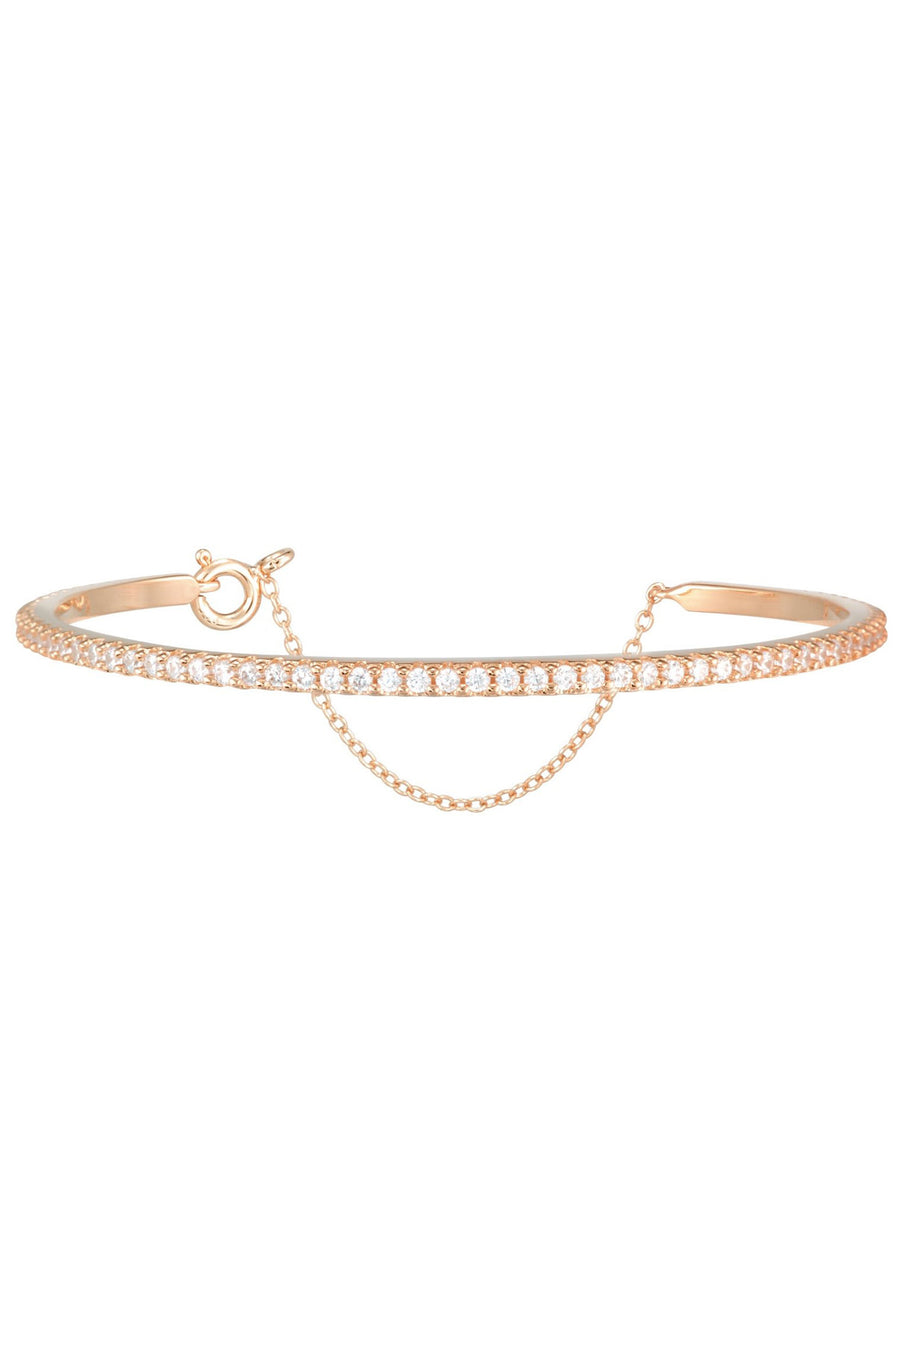 Layla Bangle in Rose Gold - HER Empire Fashion Boutique Terrigal & Online